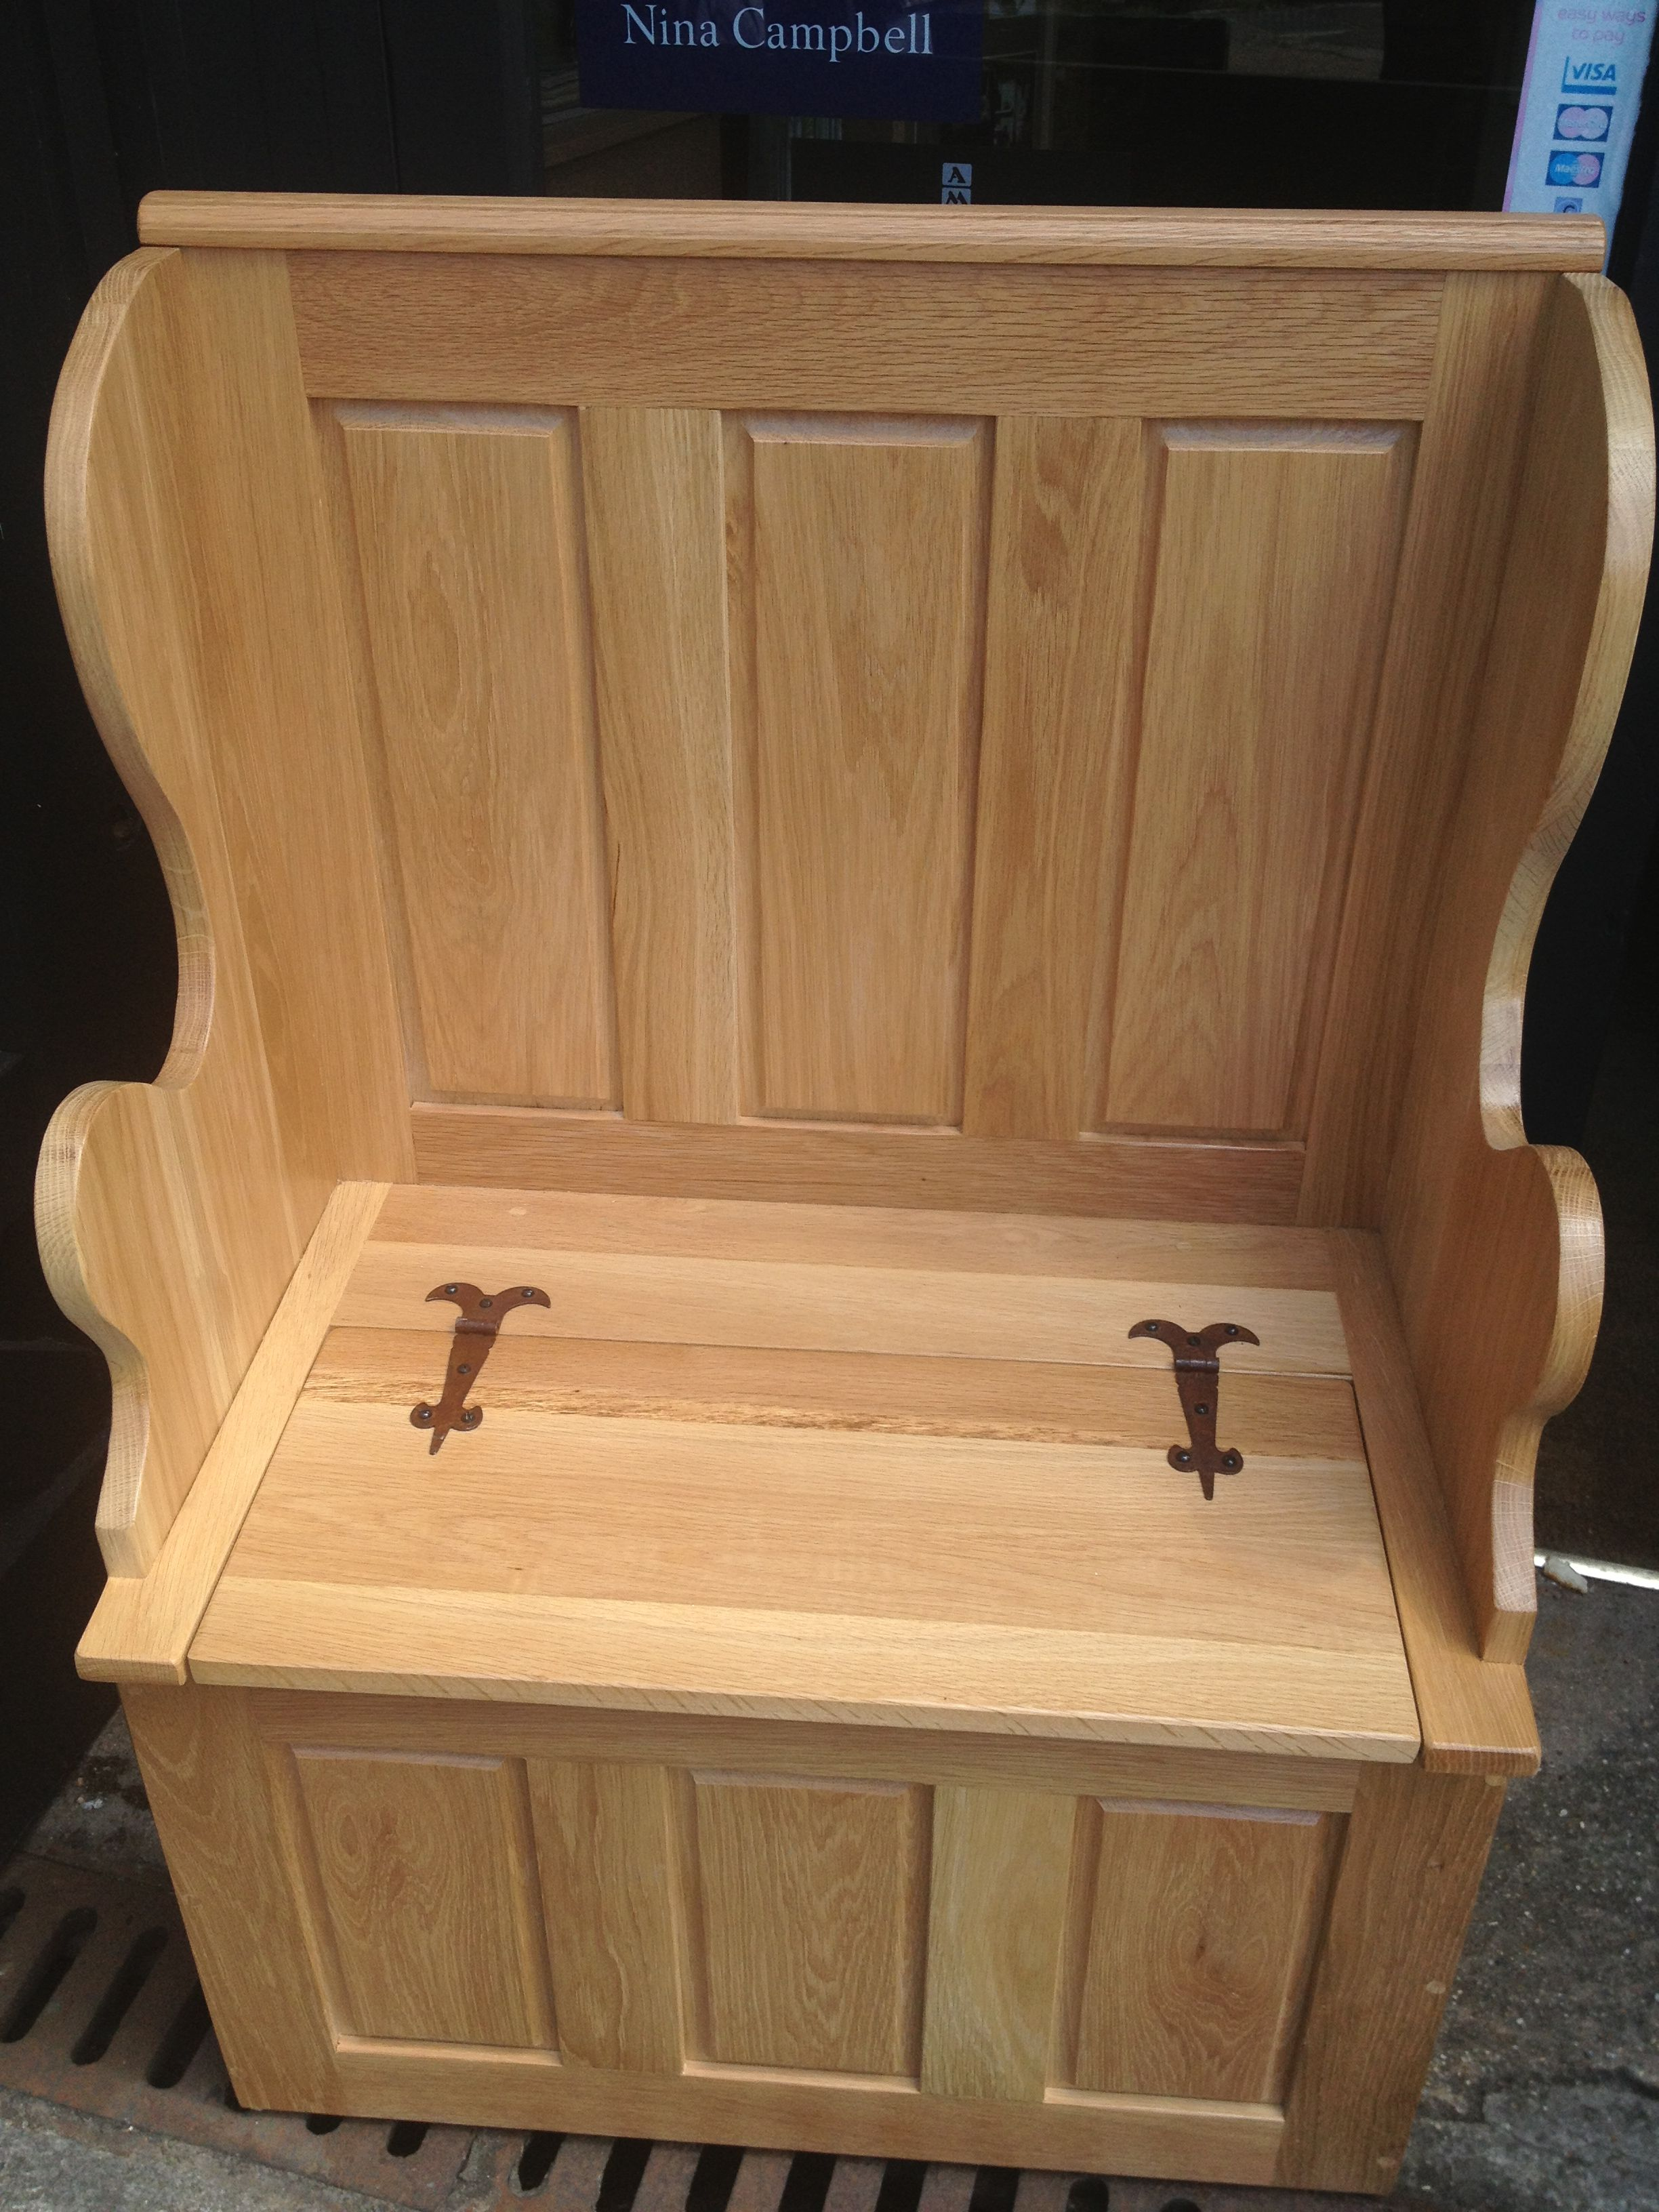 Pleasing Monk Bench Comes In 2Ft And 4Ft Sizes Benches Chairs Uwap Interior Chair Design Uwaporg